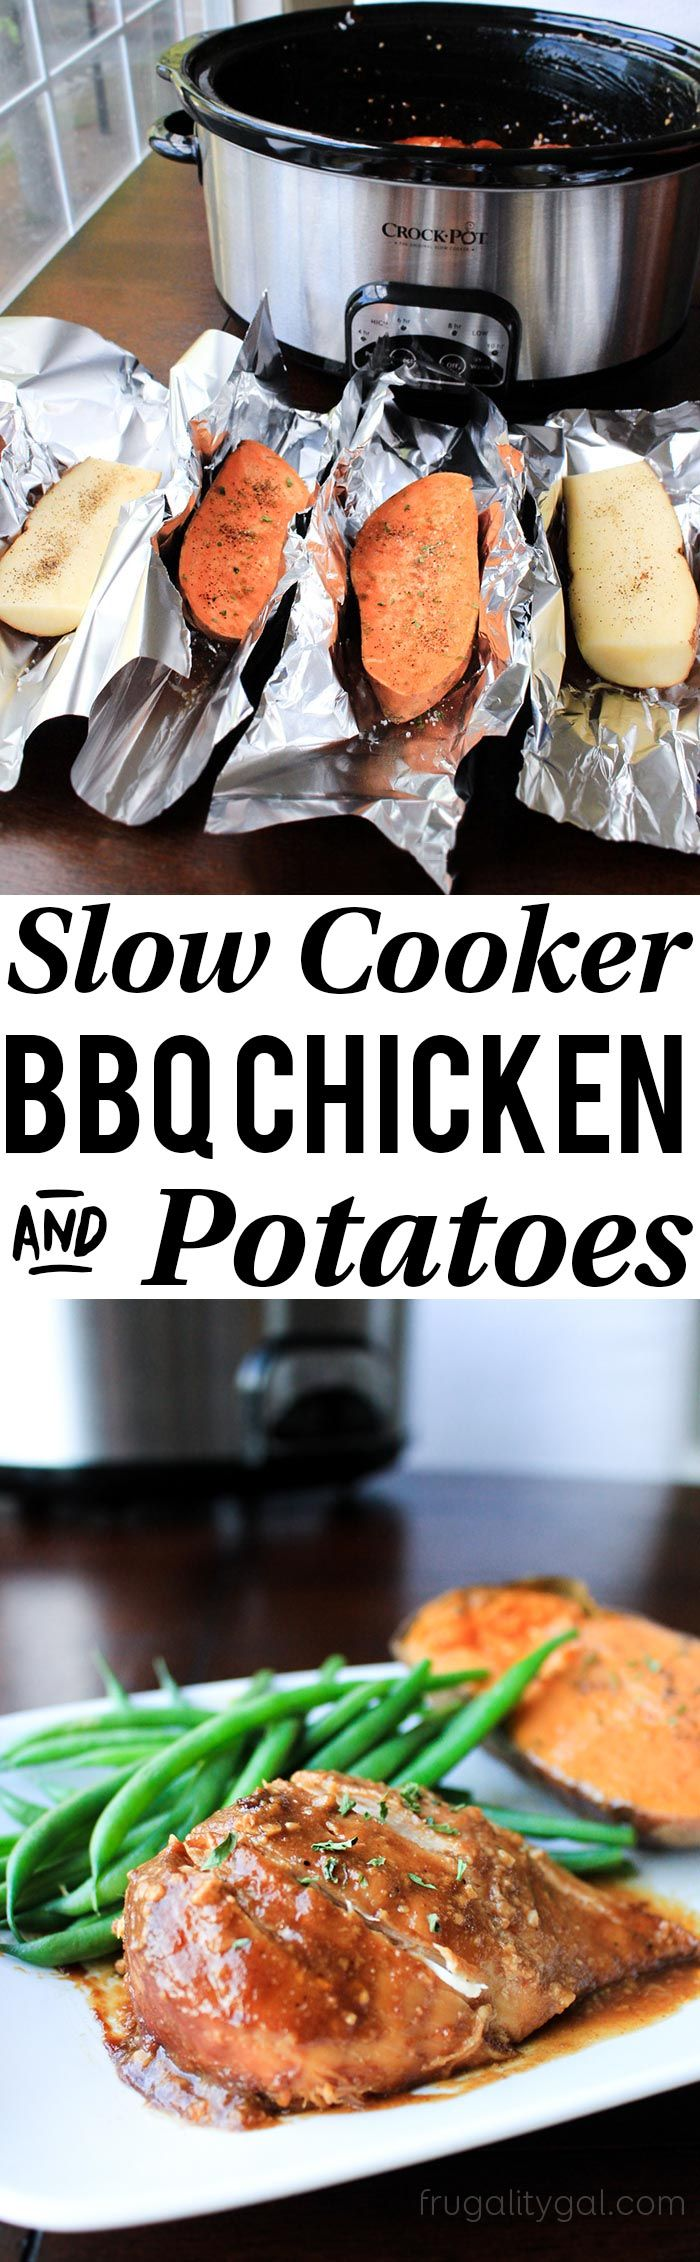 If you love easy dinners, you'll LOVE this crockpot BBQ chicken! Sweet potatoes are cooked in foil on top, while the chicken cooks on the bottom… Such an easy slow cooker chicken recipe!